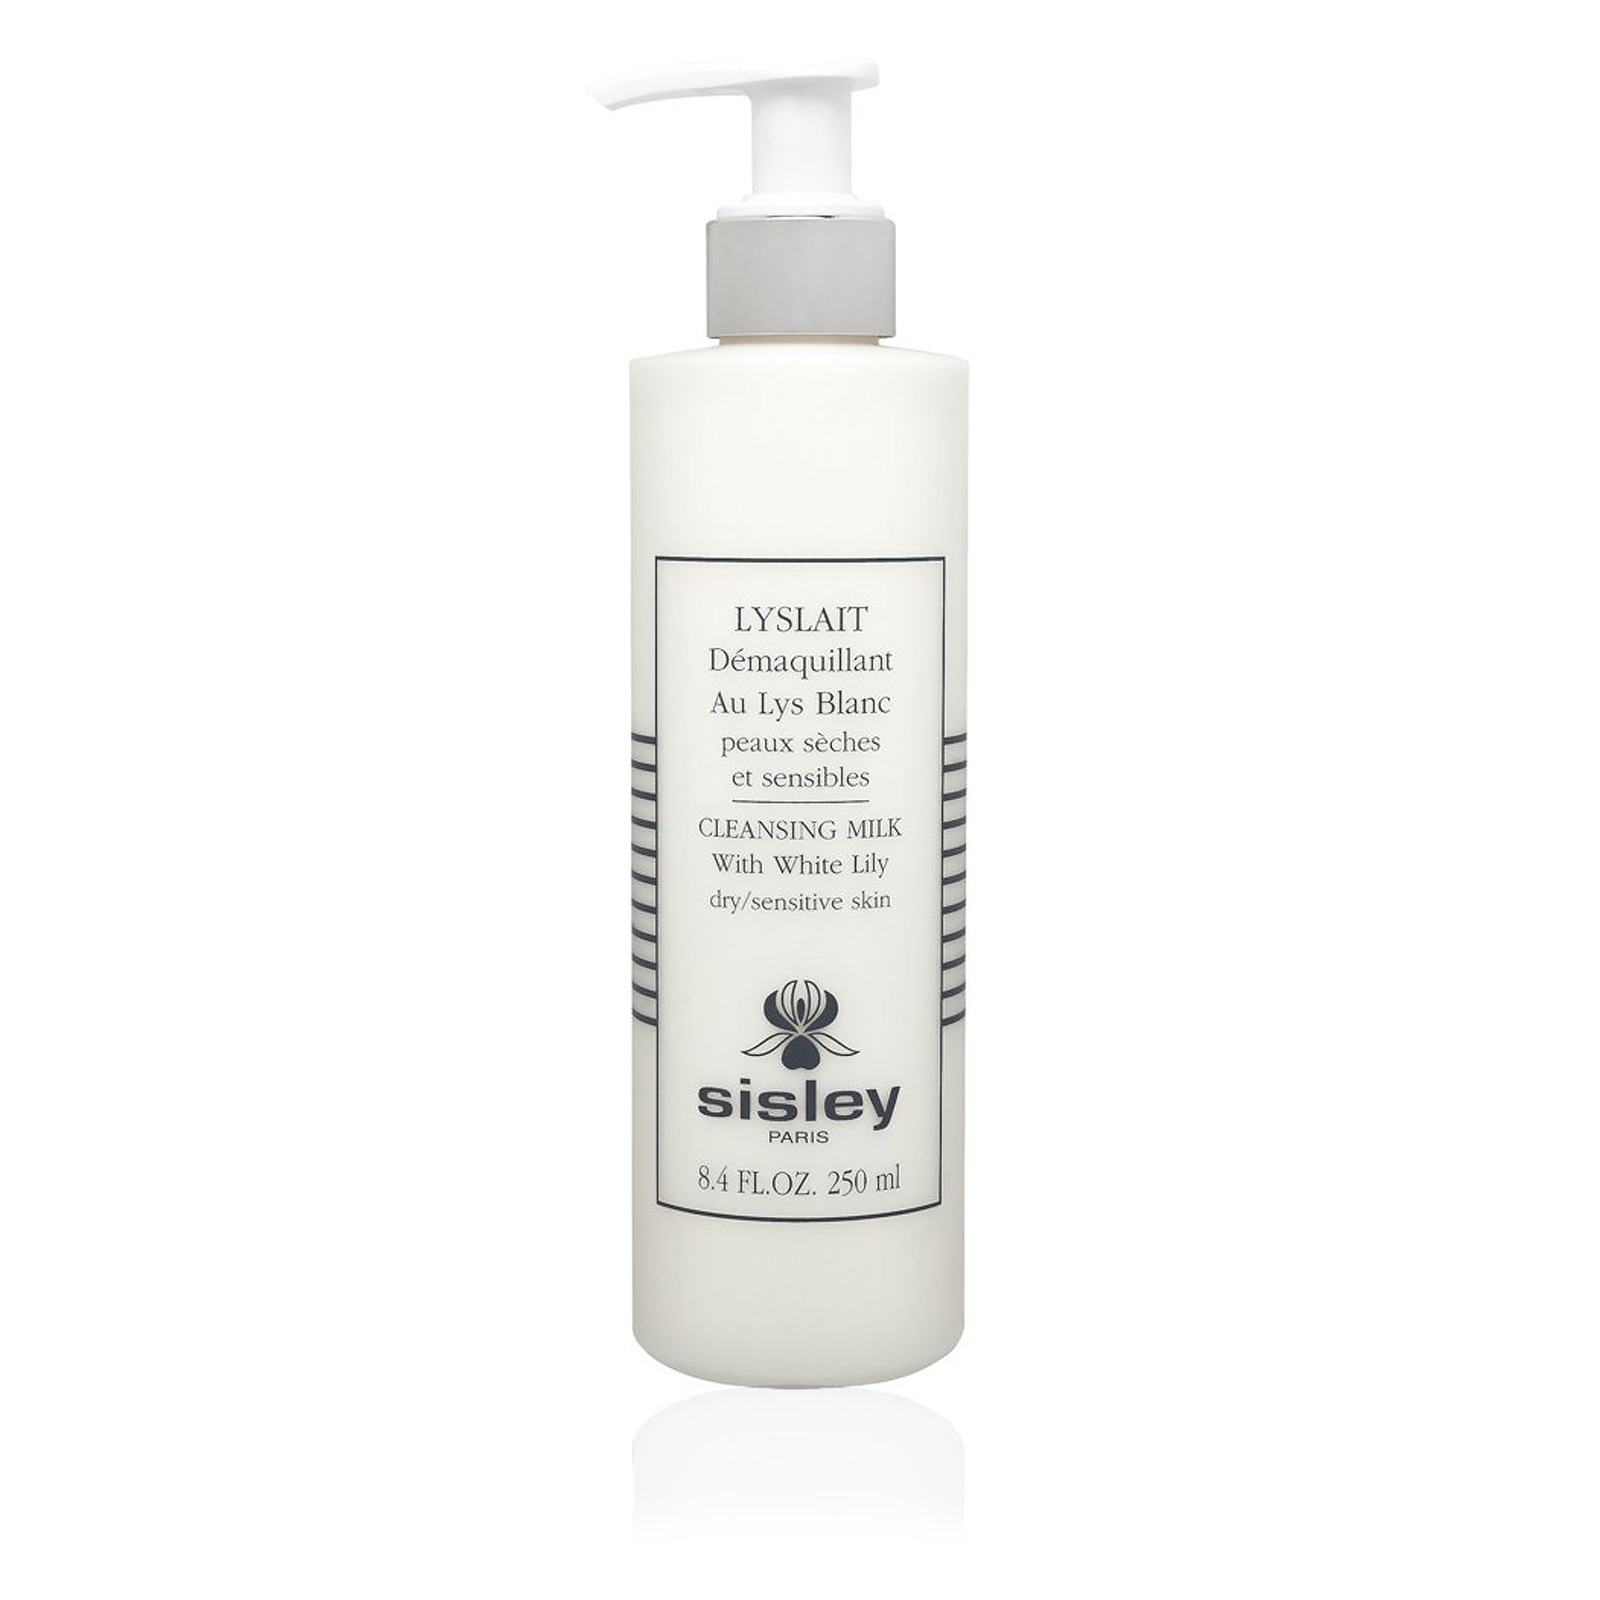 Cleansing Milk with White Lily (Dry / Sensitive Skin)